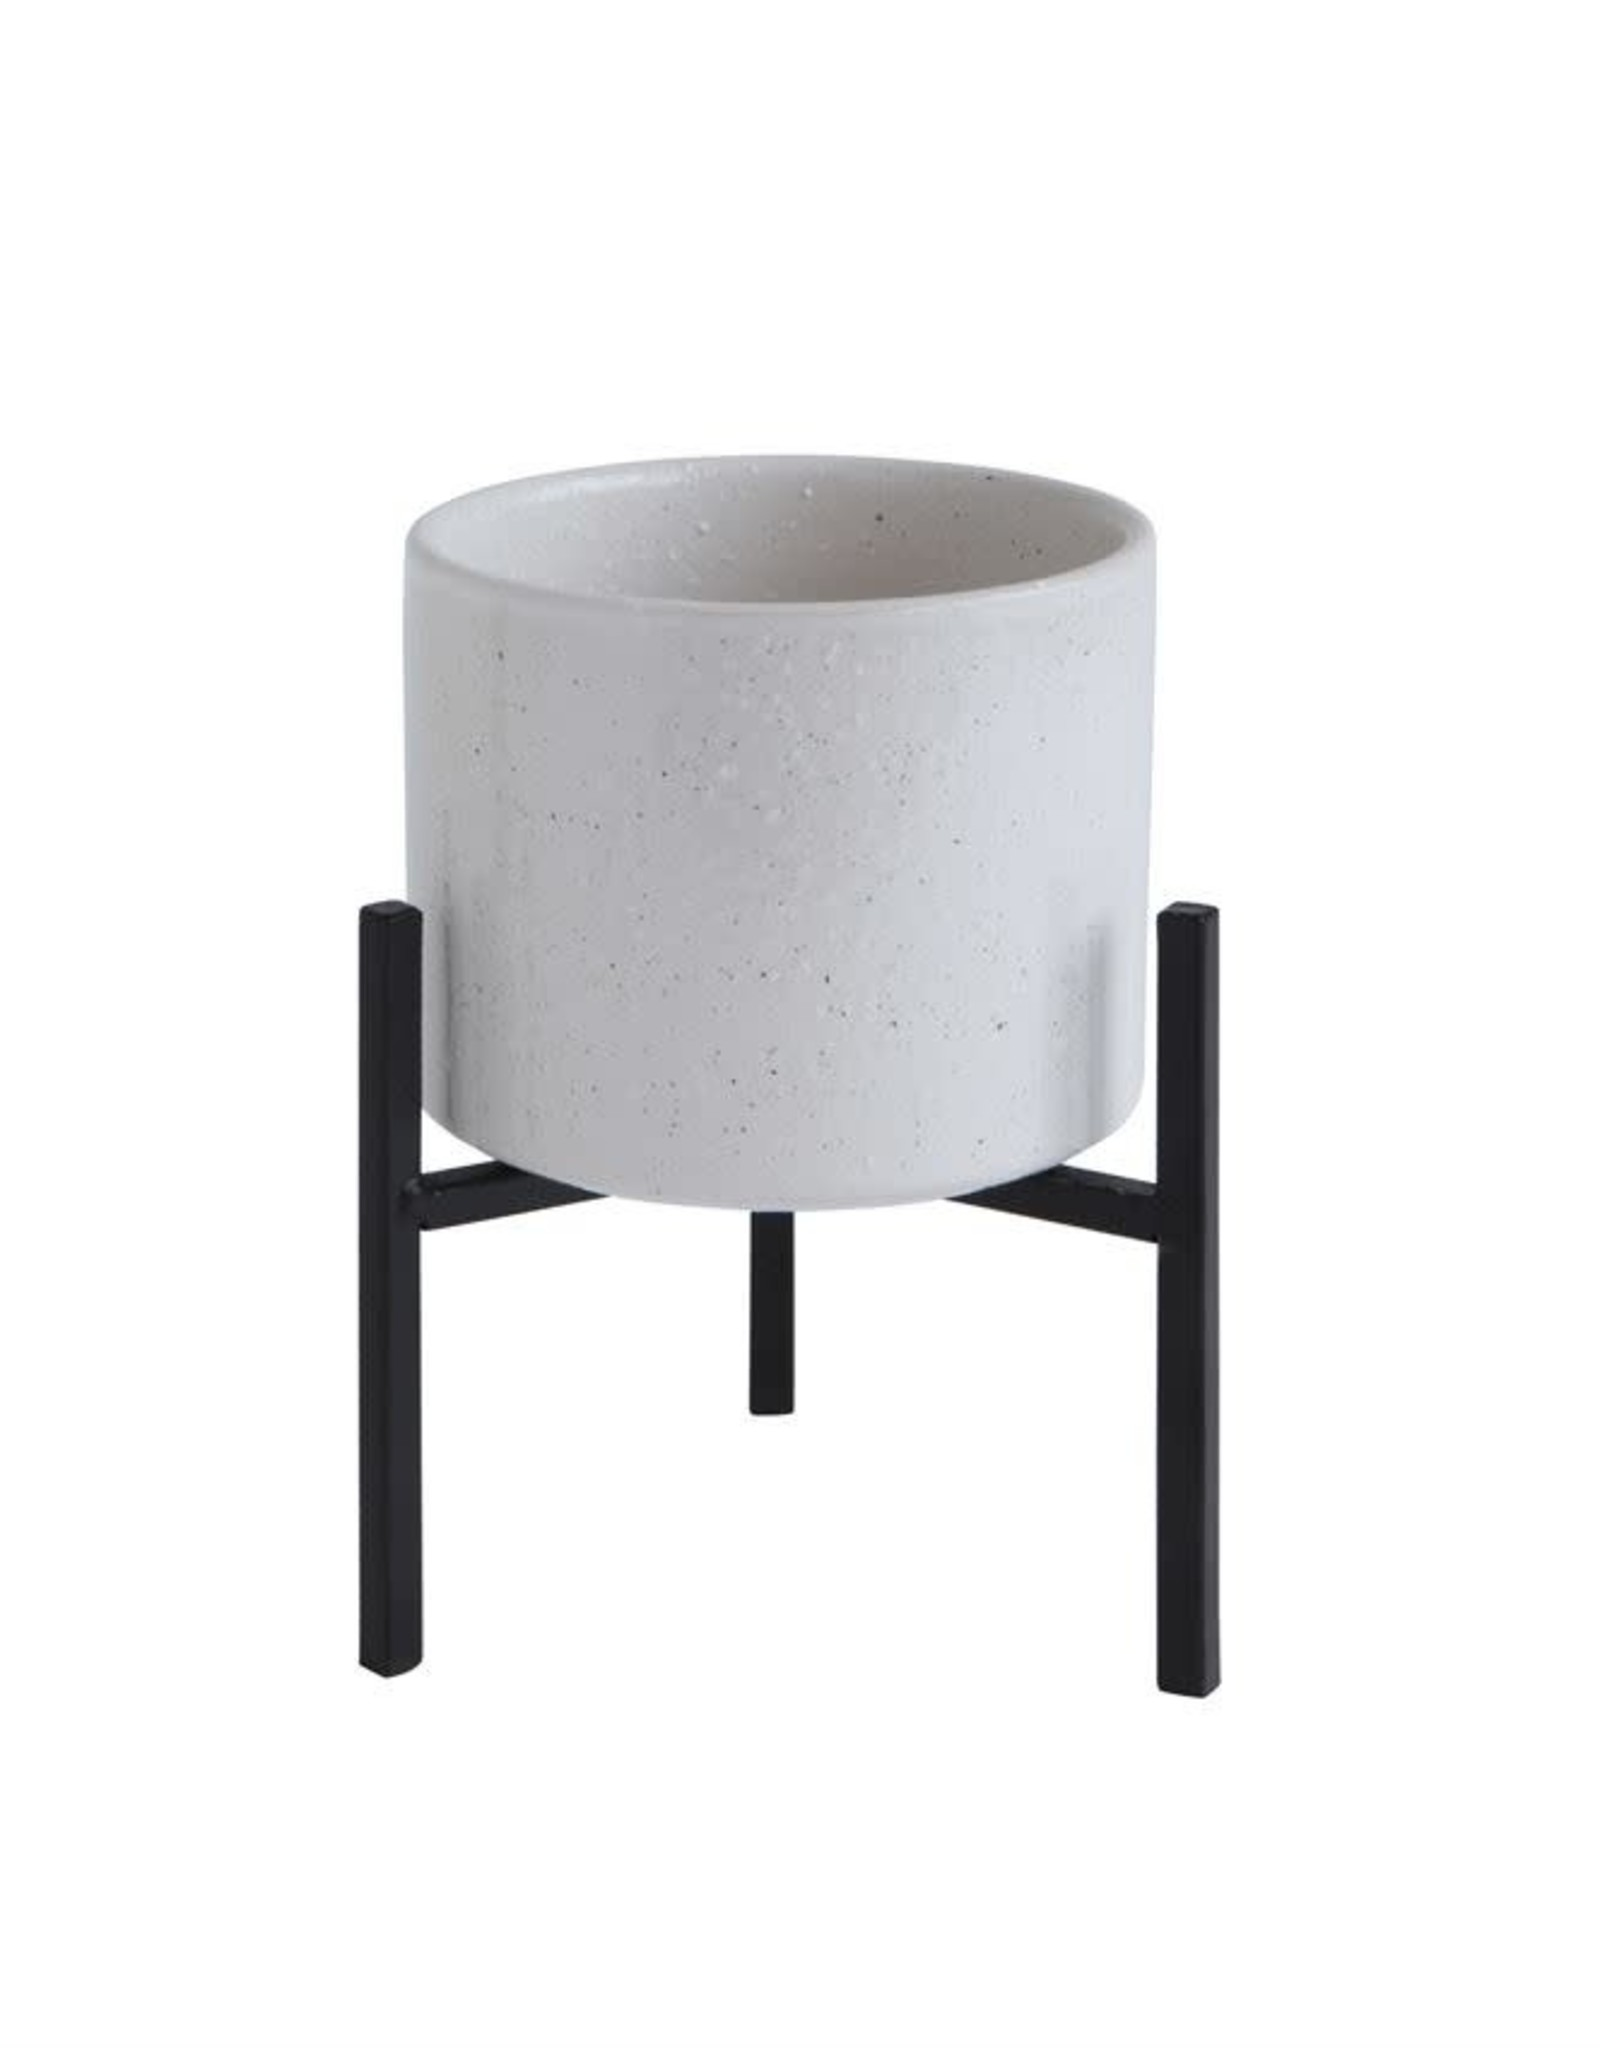 Stoneware Planter with Metal Stand